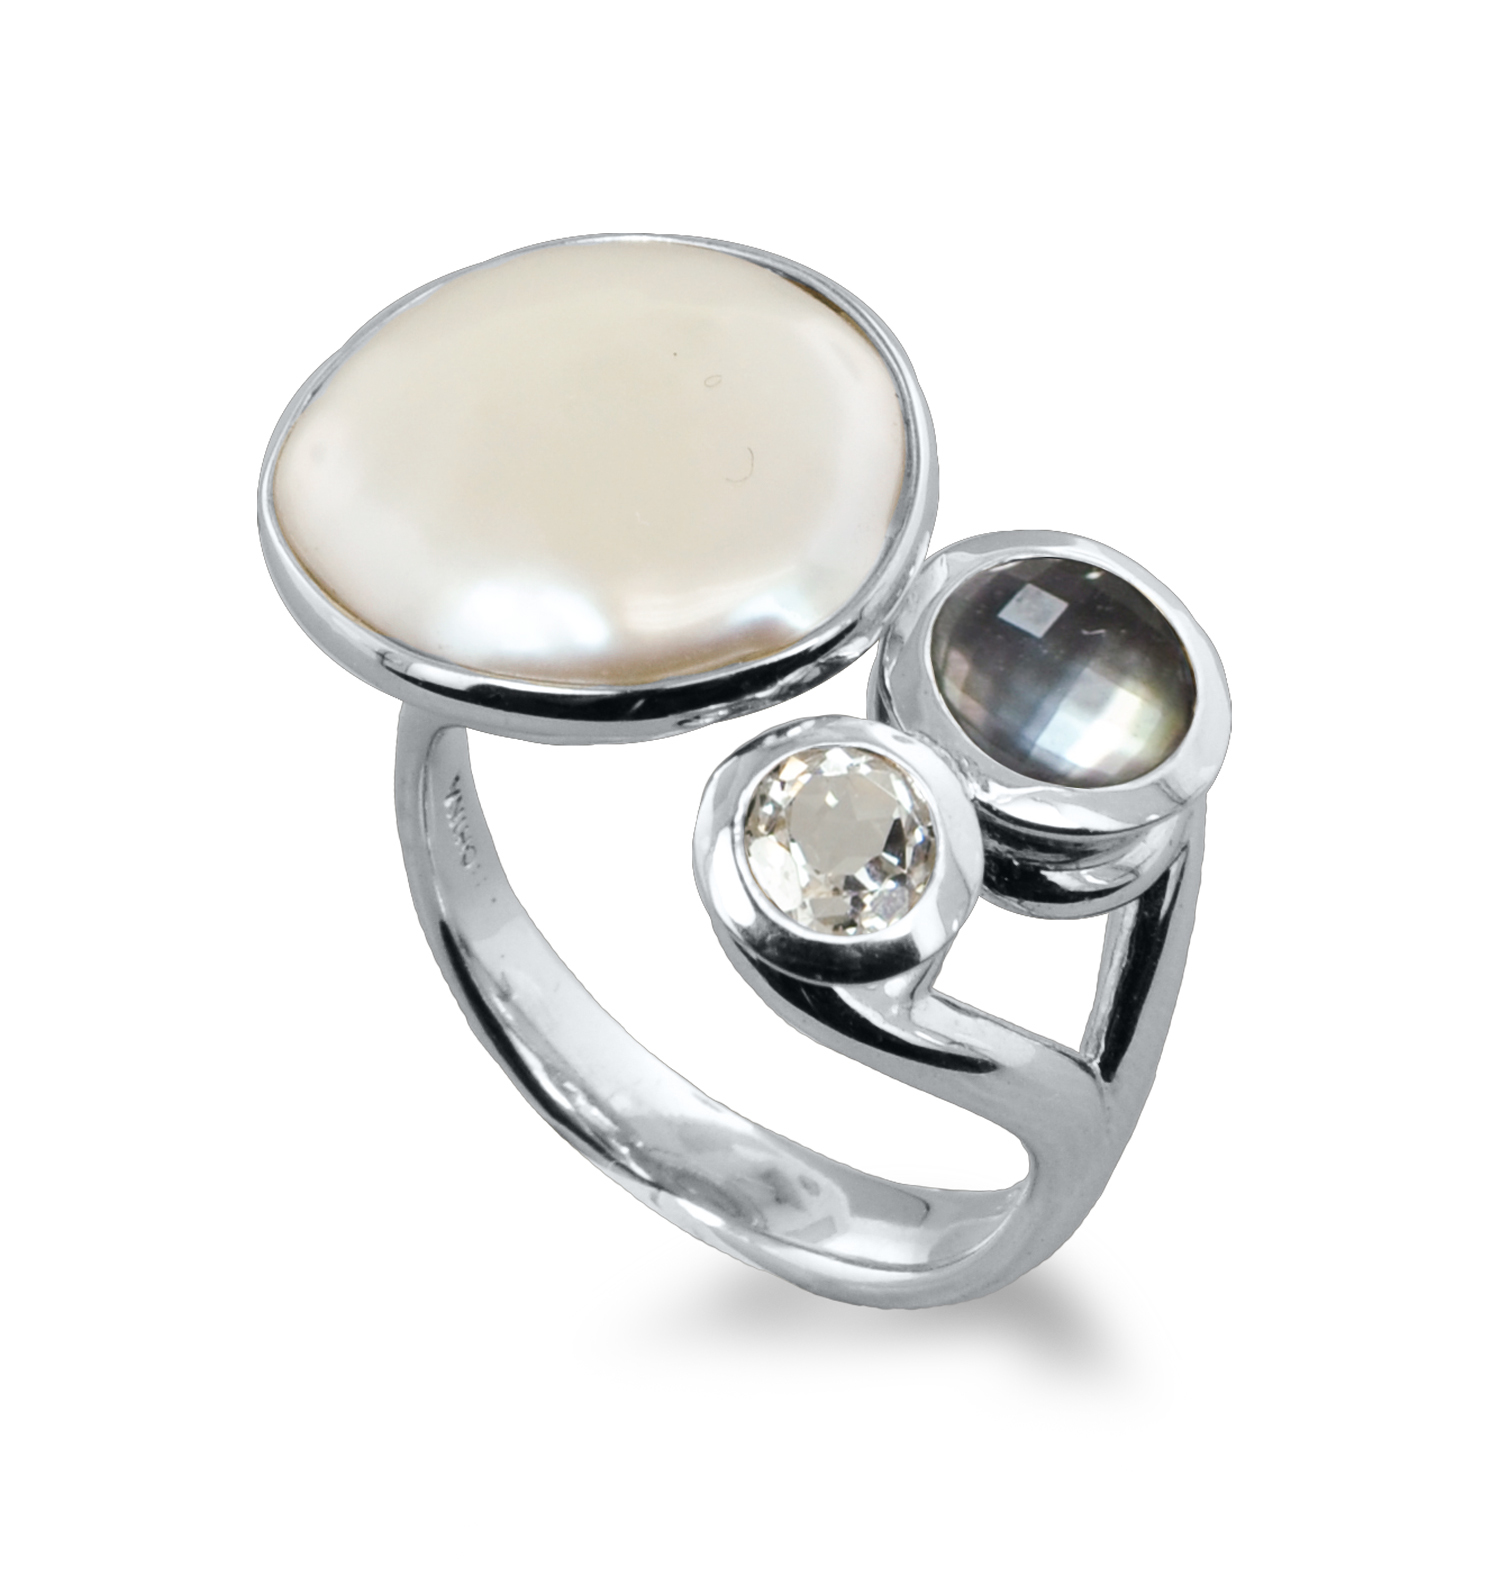 Sterling Silver 15-16mm White Baroque Coin Freshwater Cultured Pearl with Black Mother of Pearl and White Topaz Ring